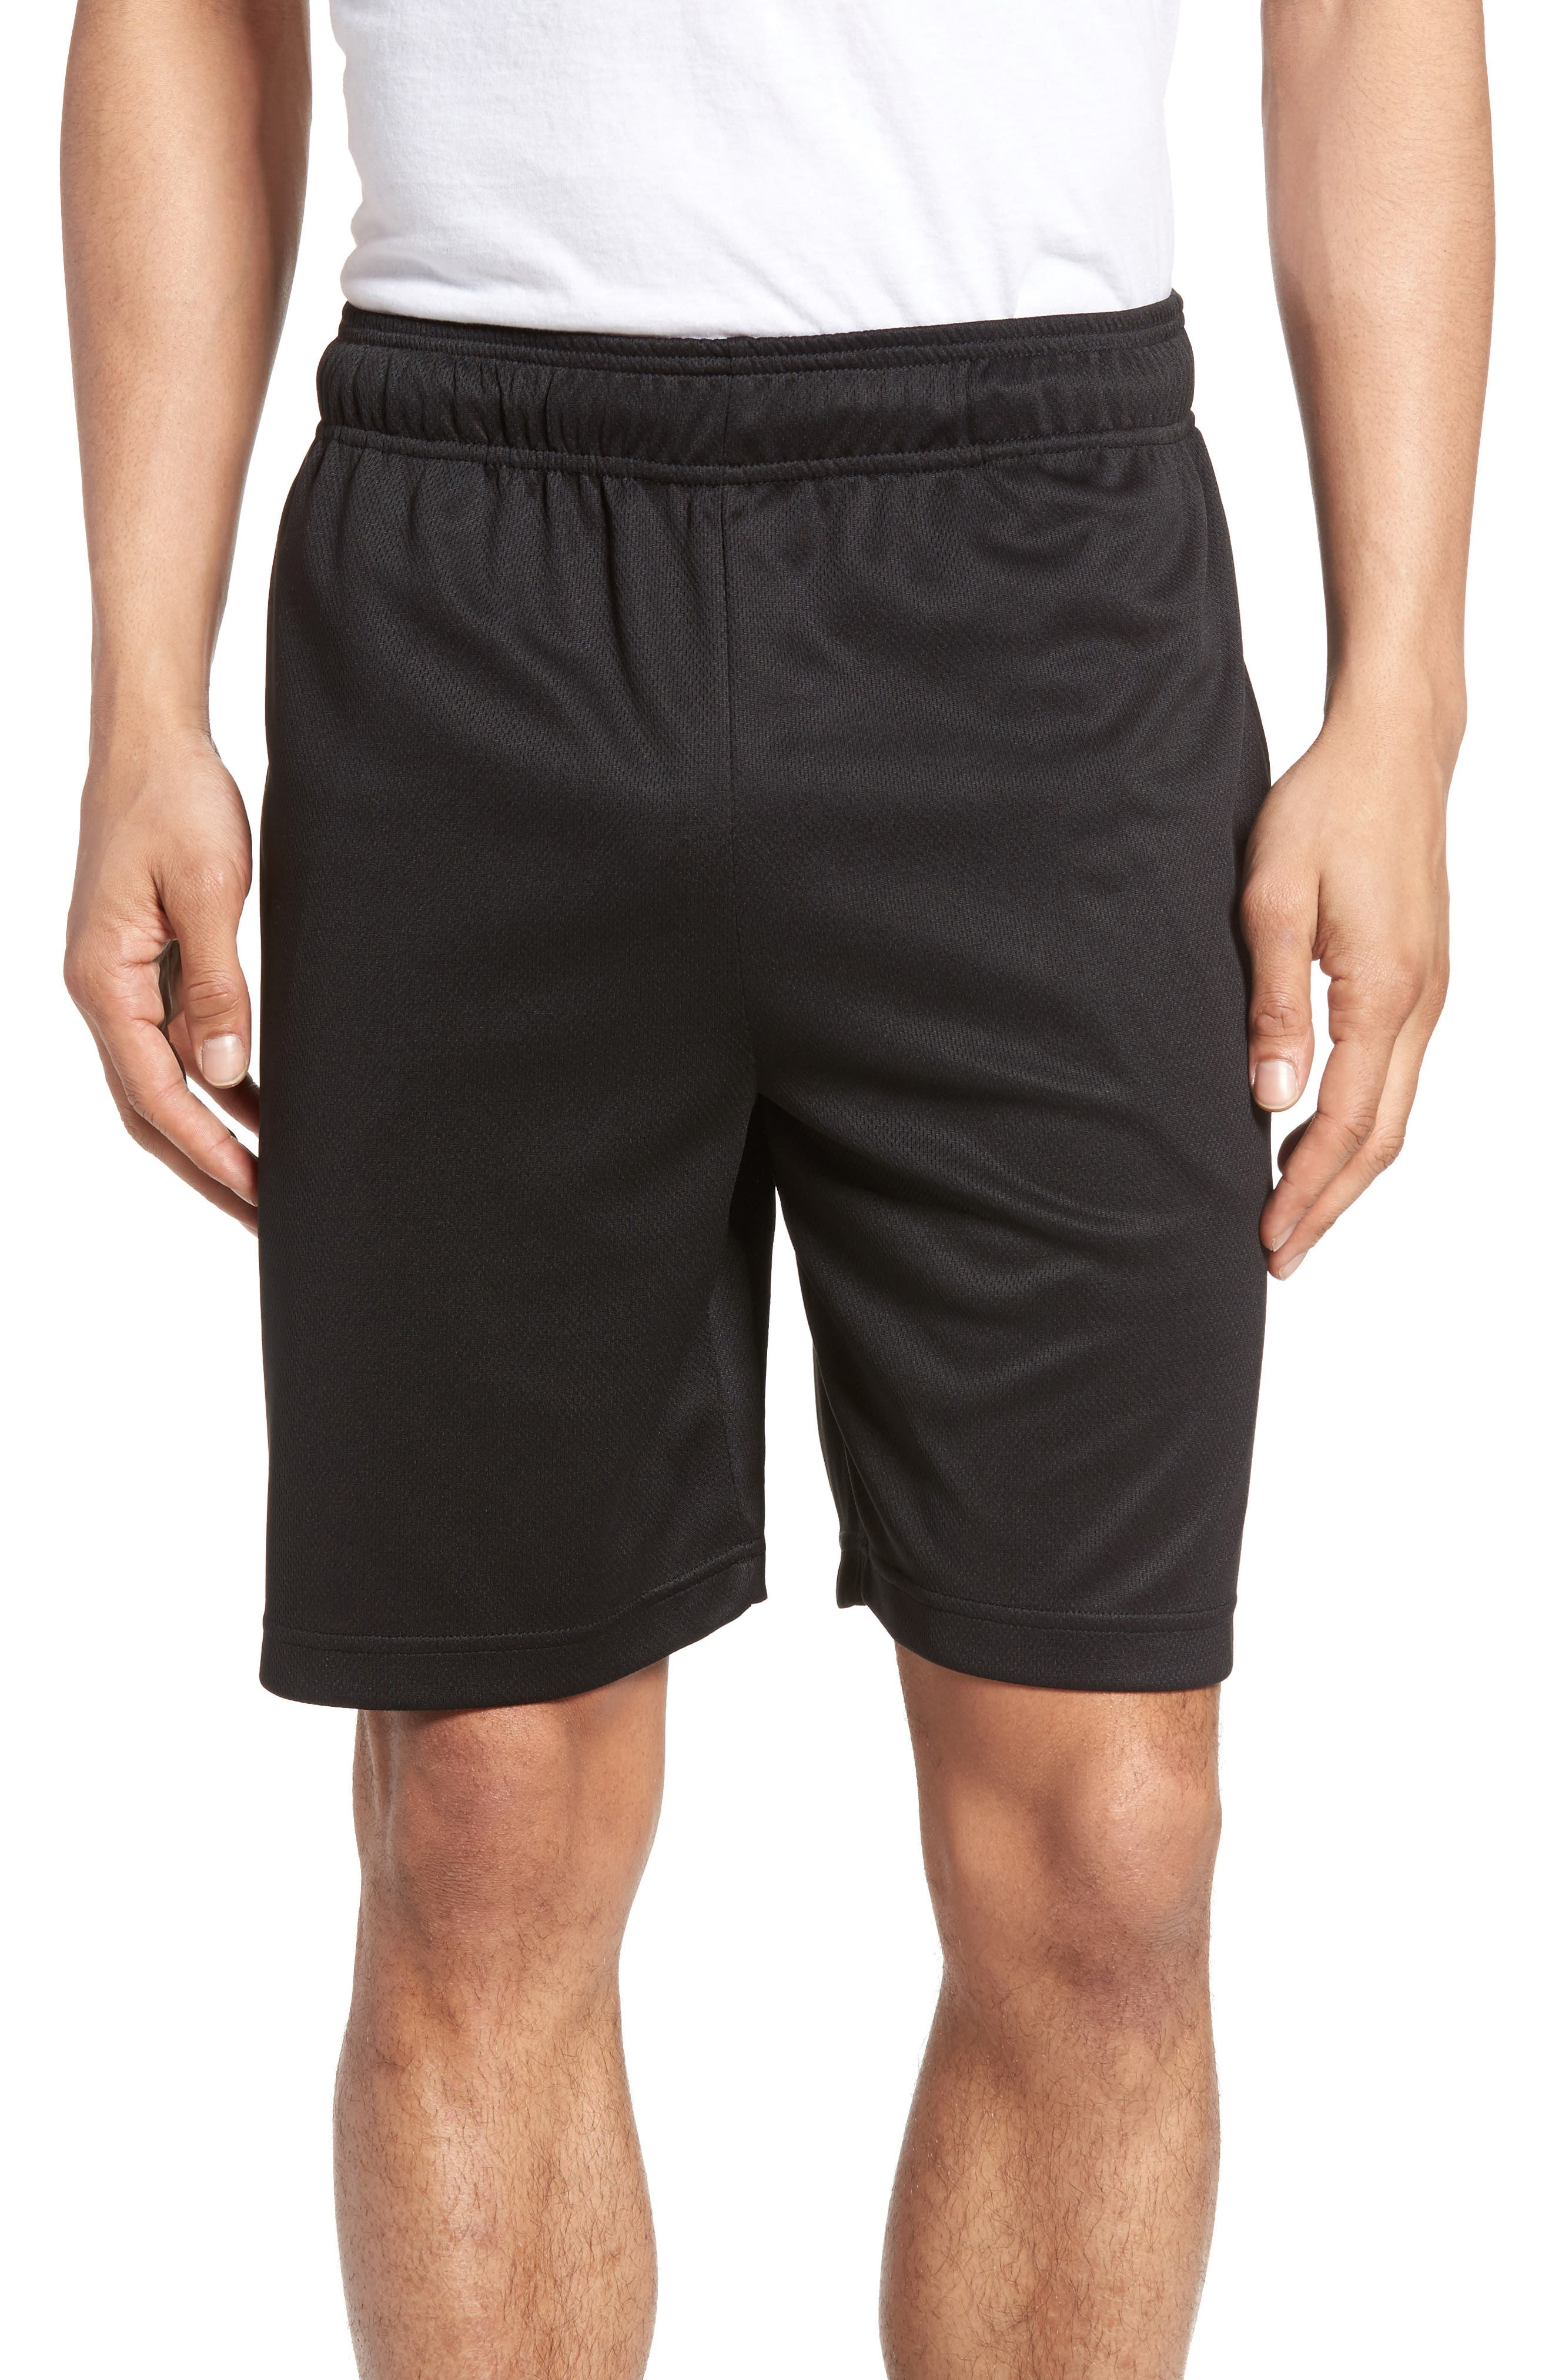 Work Out Lounge Shorts,                         Main,                         color,